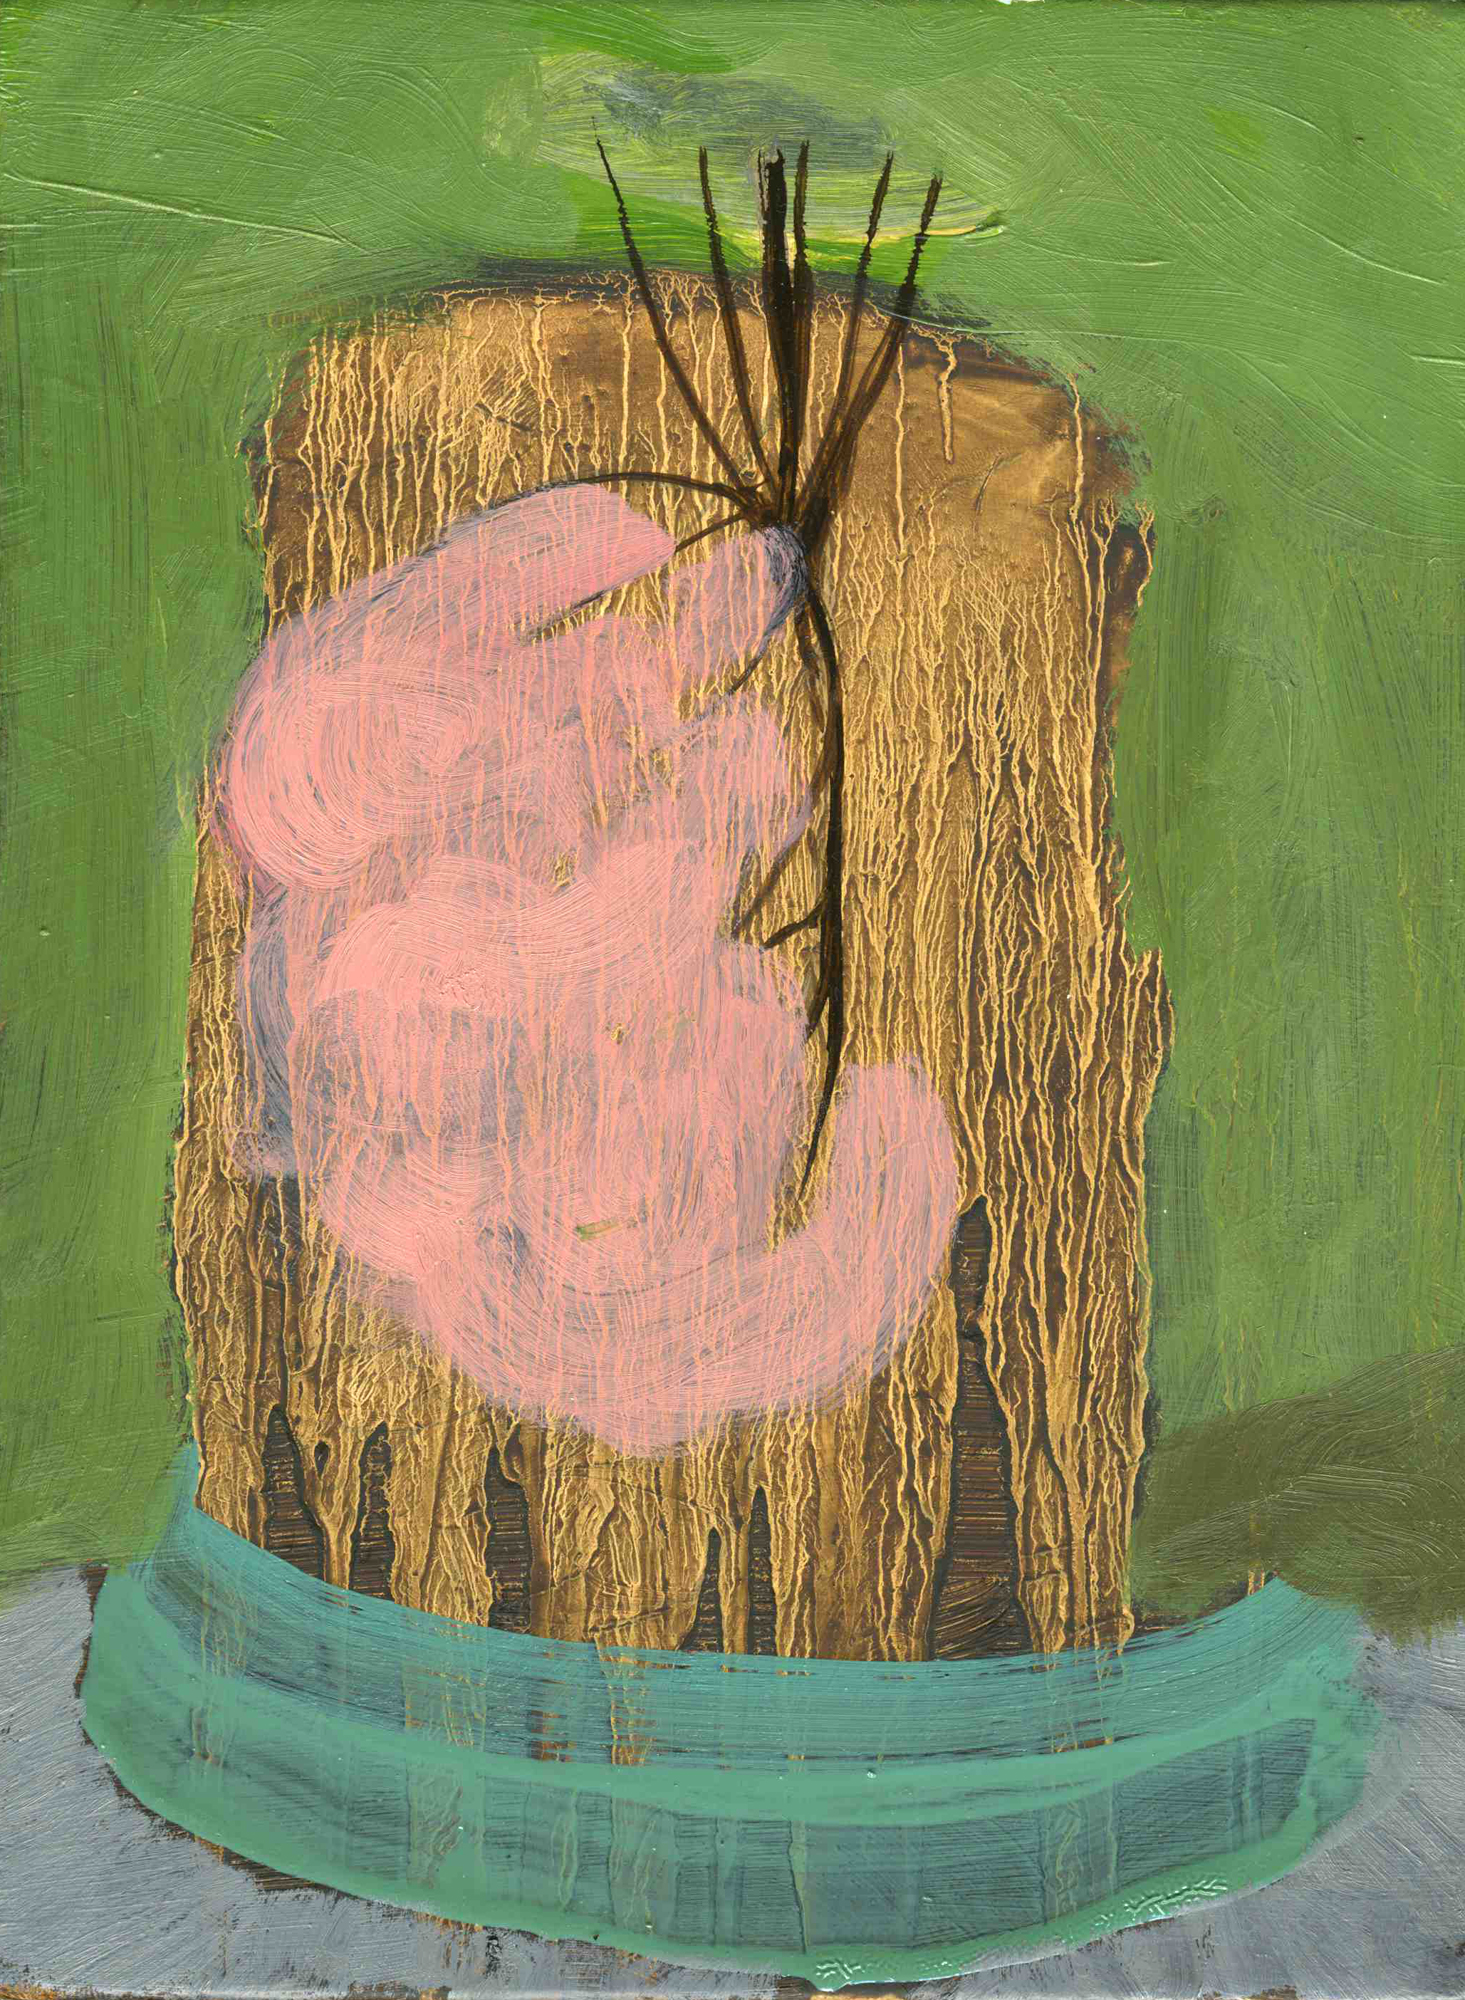 Untitled II, 2008, Oil on cotton, 24 x 18 cm